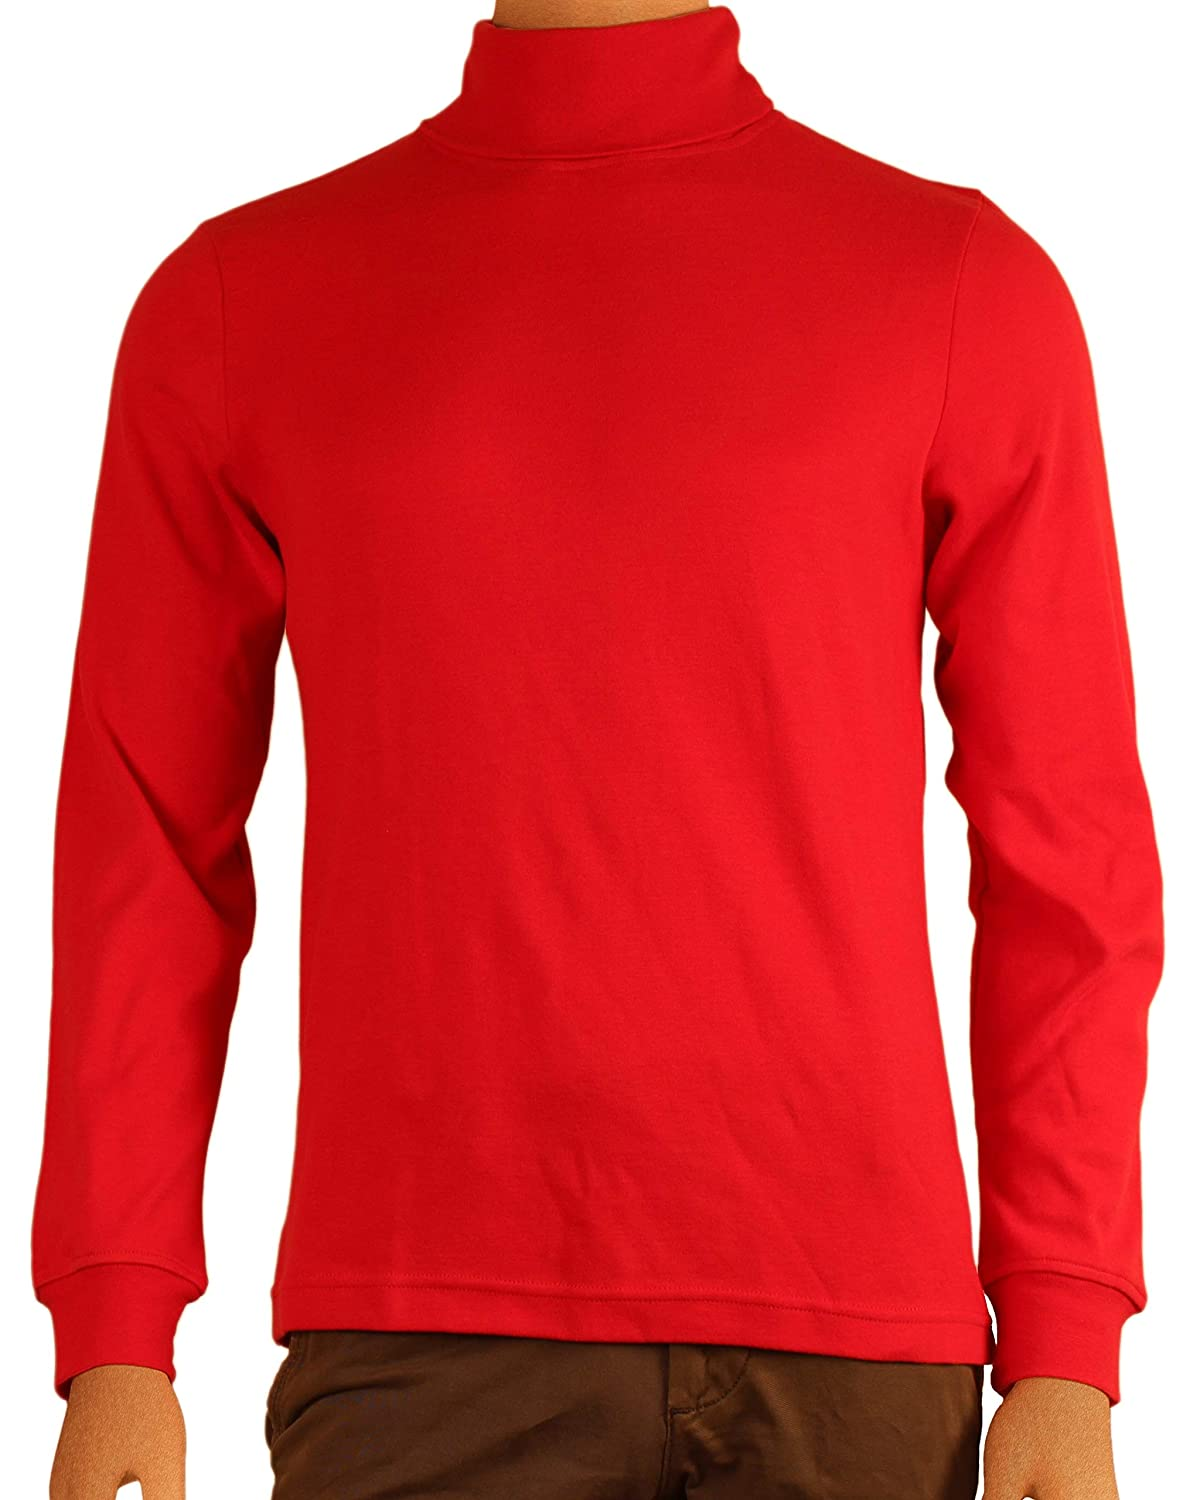 Men's 100% Combed Cotton Supersoft Relaxfit Casual Ski Turtleneck